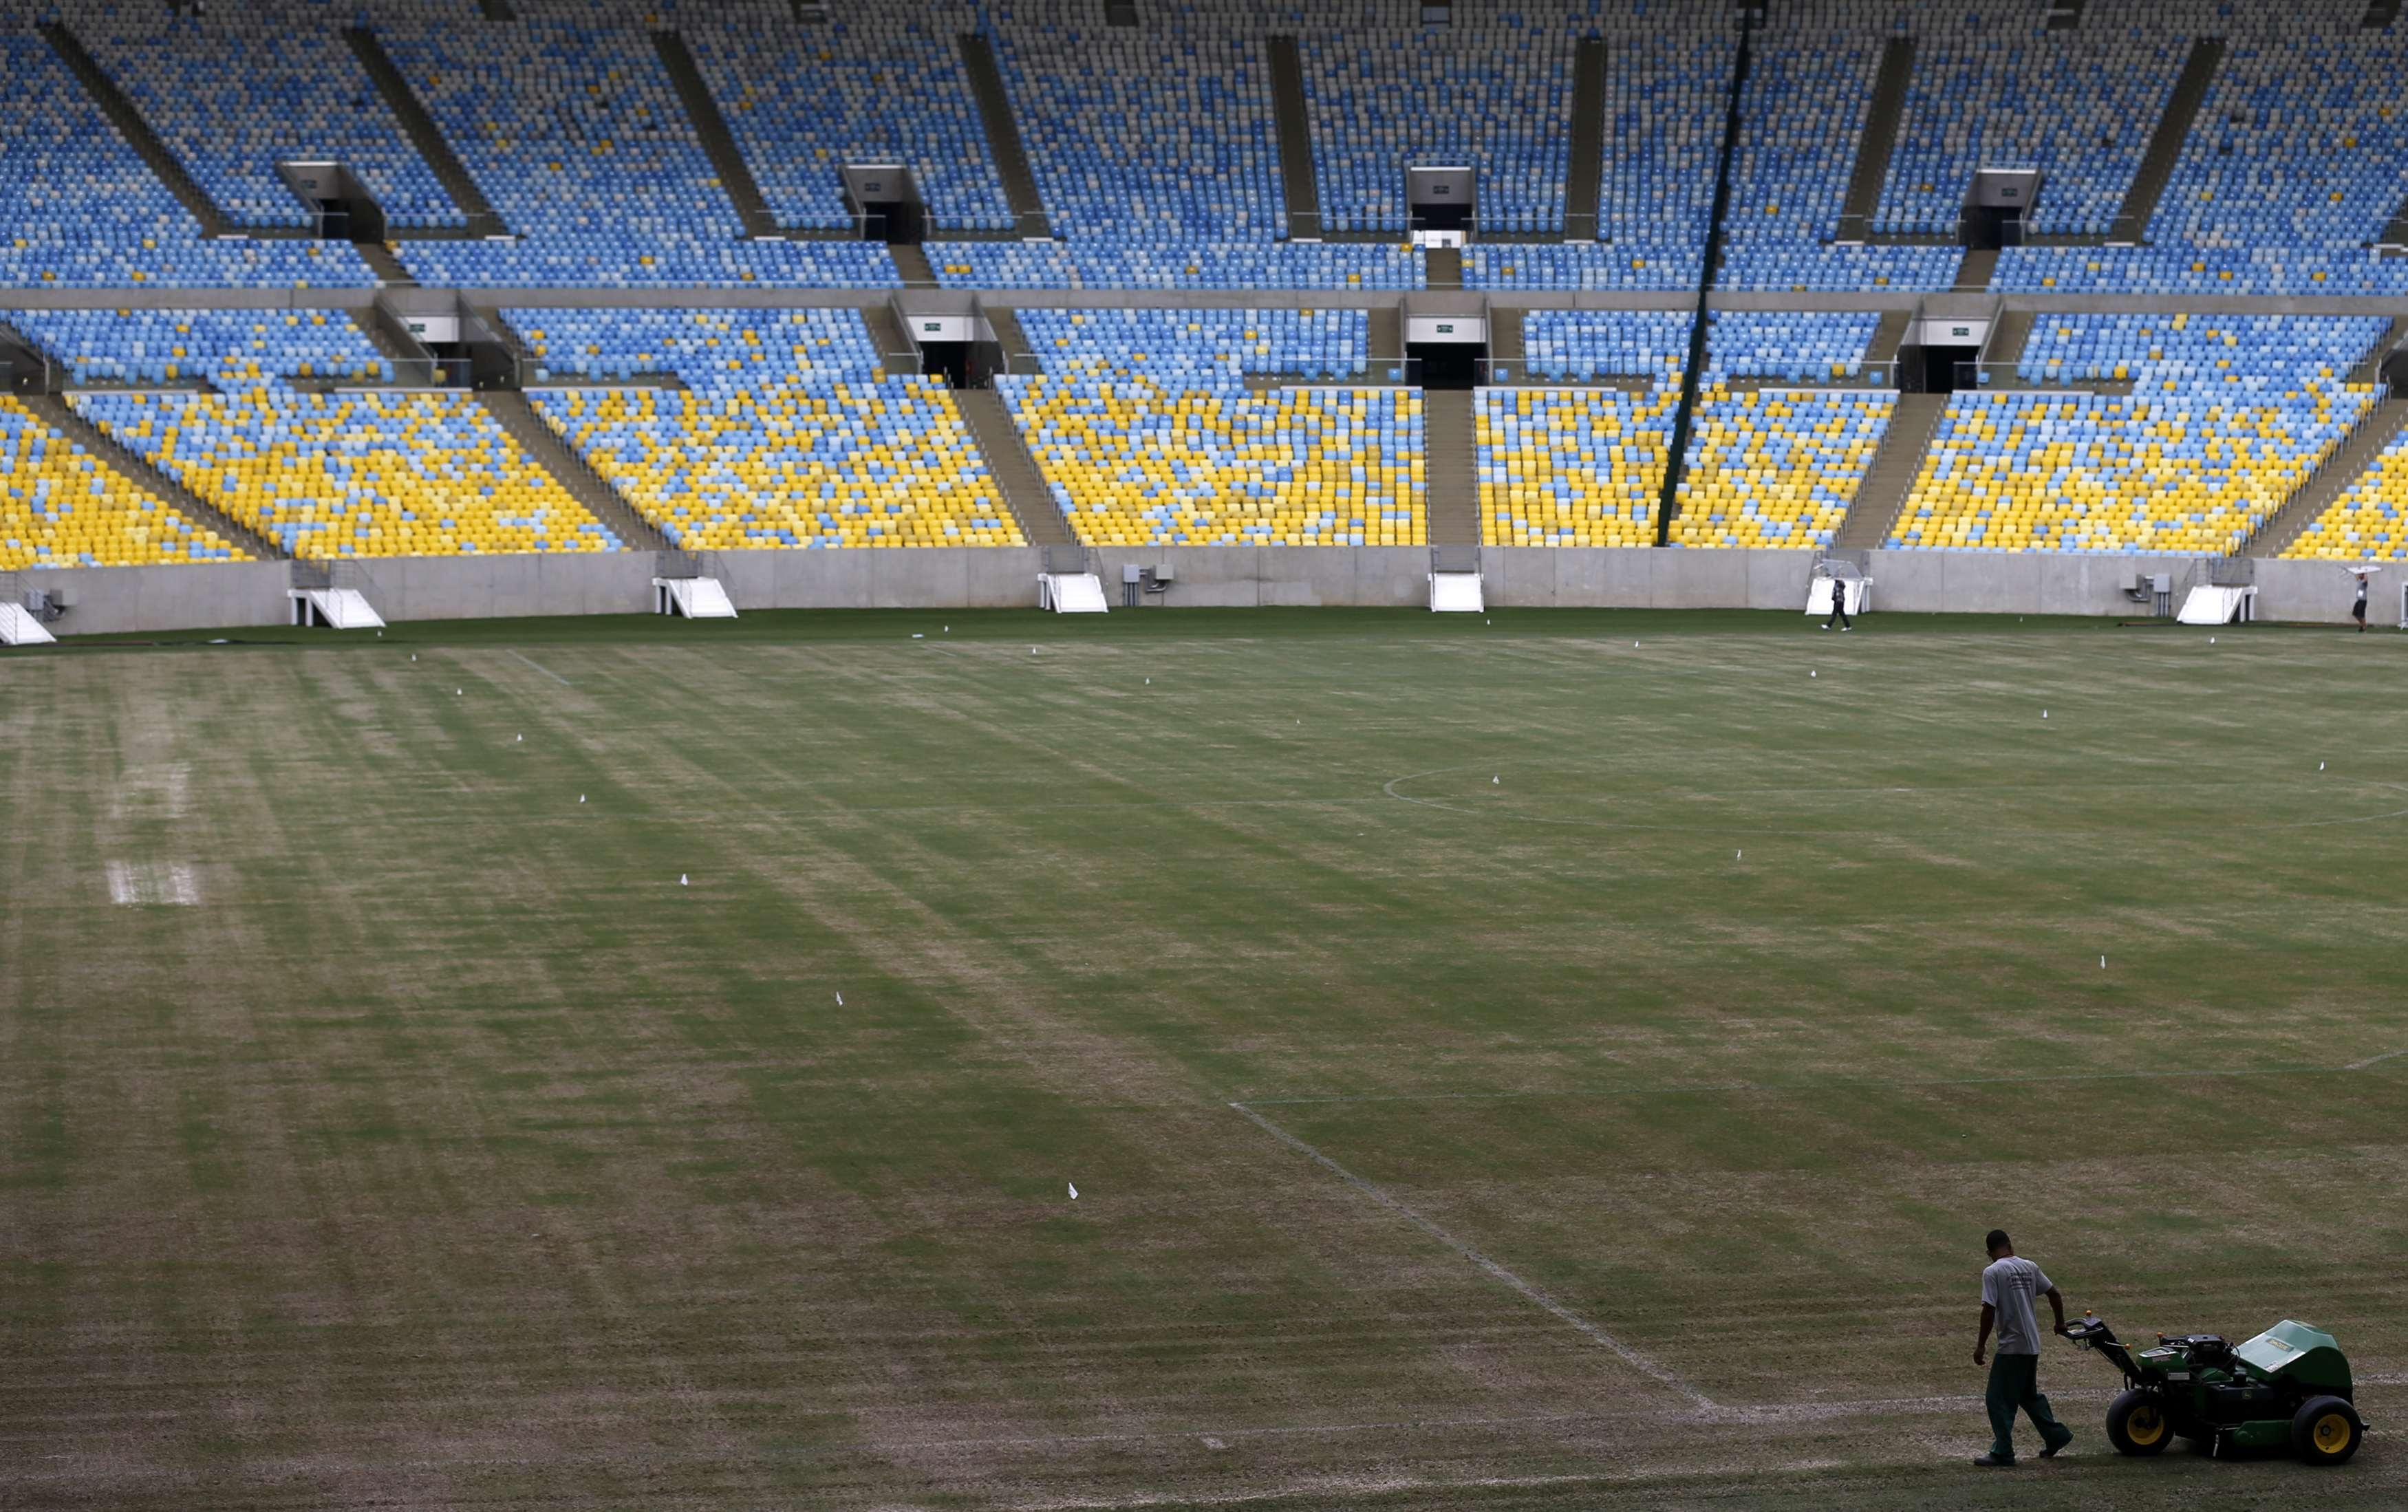 A worker prepares the field of the Maracana stadium during a press visit in Rio de Janeiro